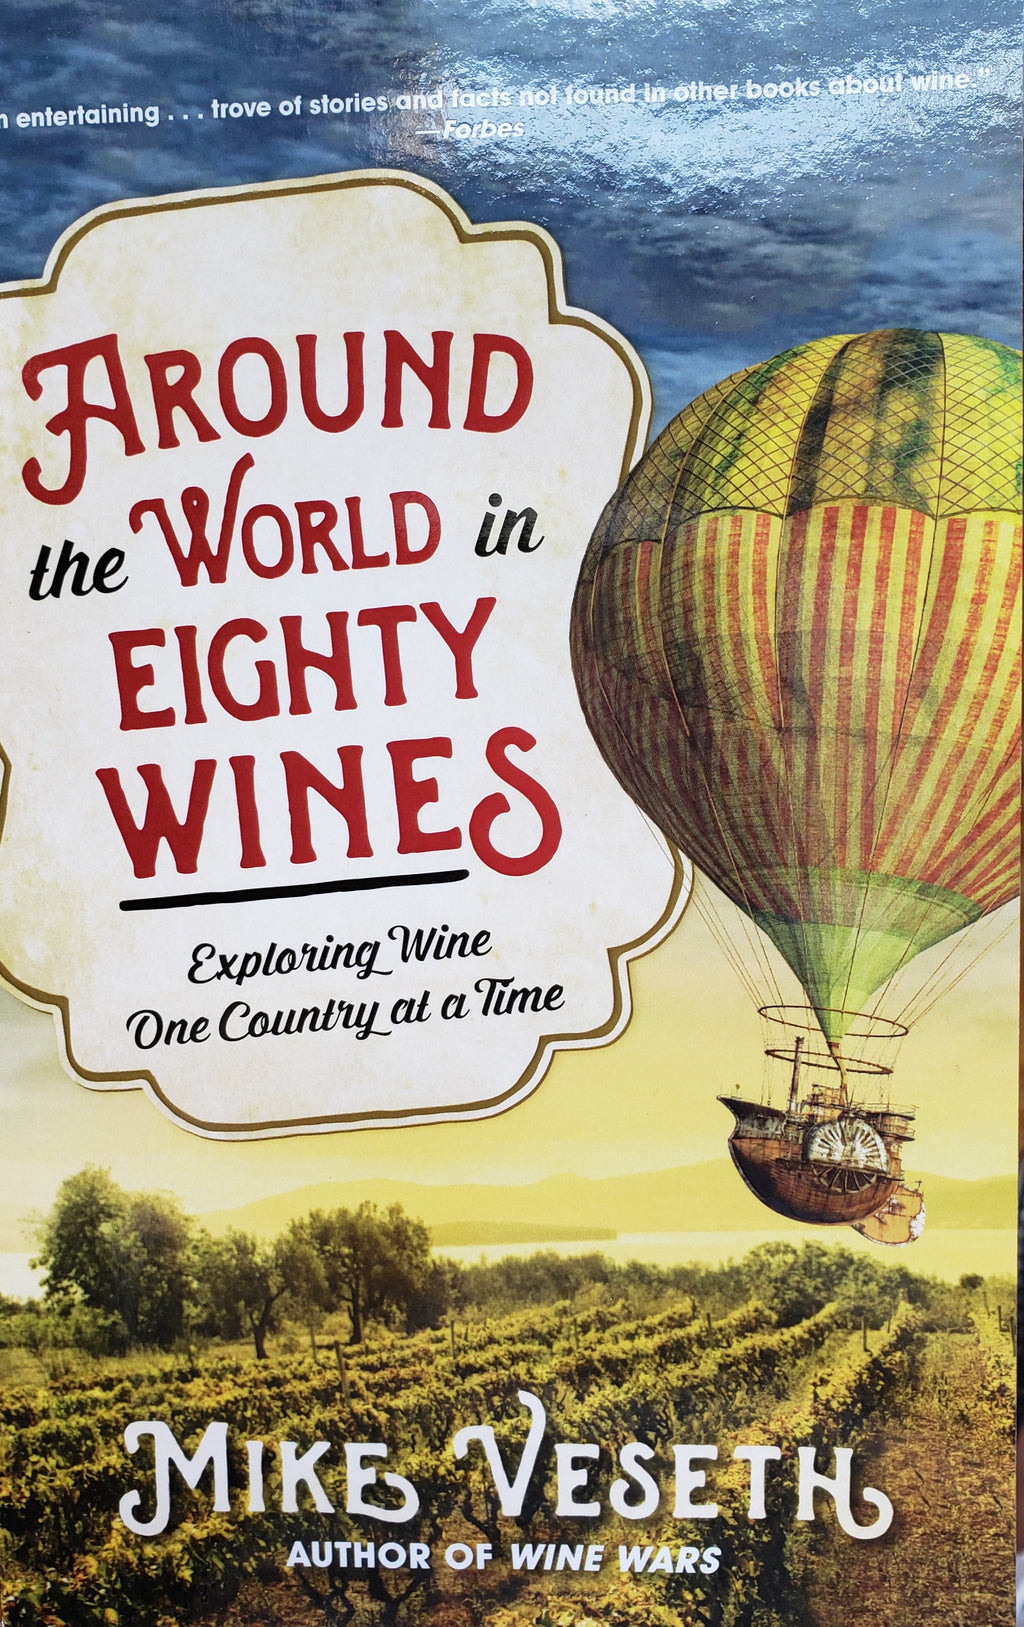 Around the World in Eighty Wines by Mike Veseth